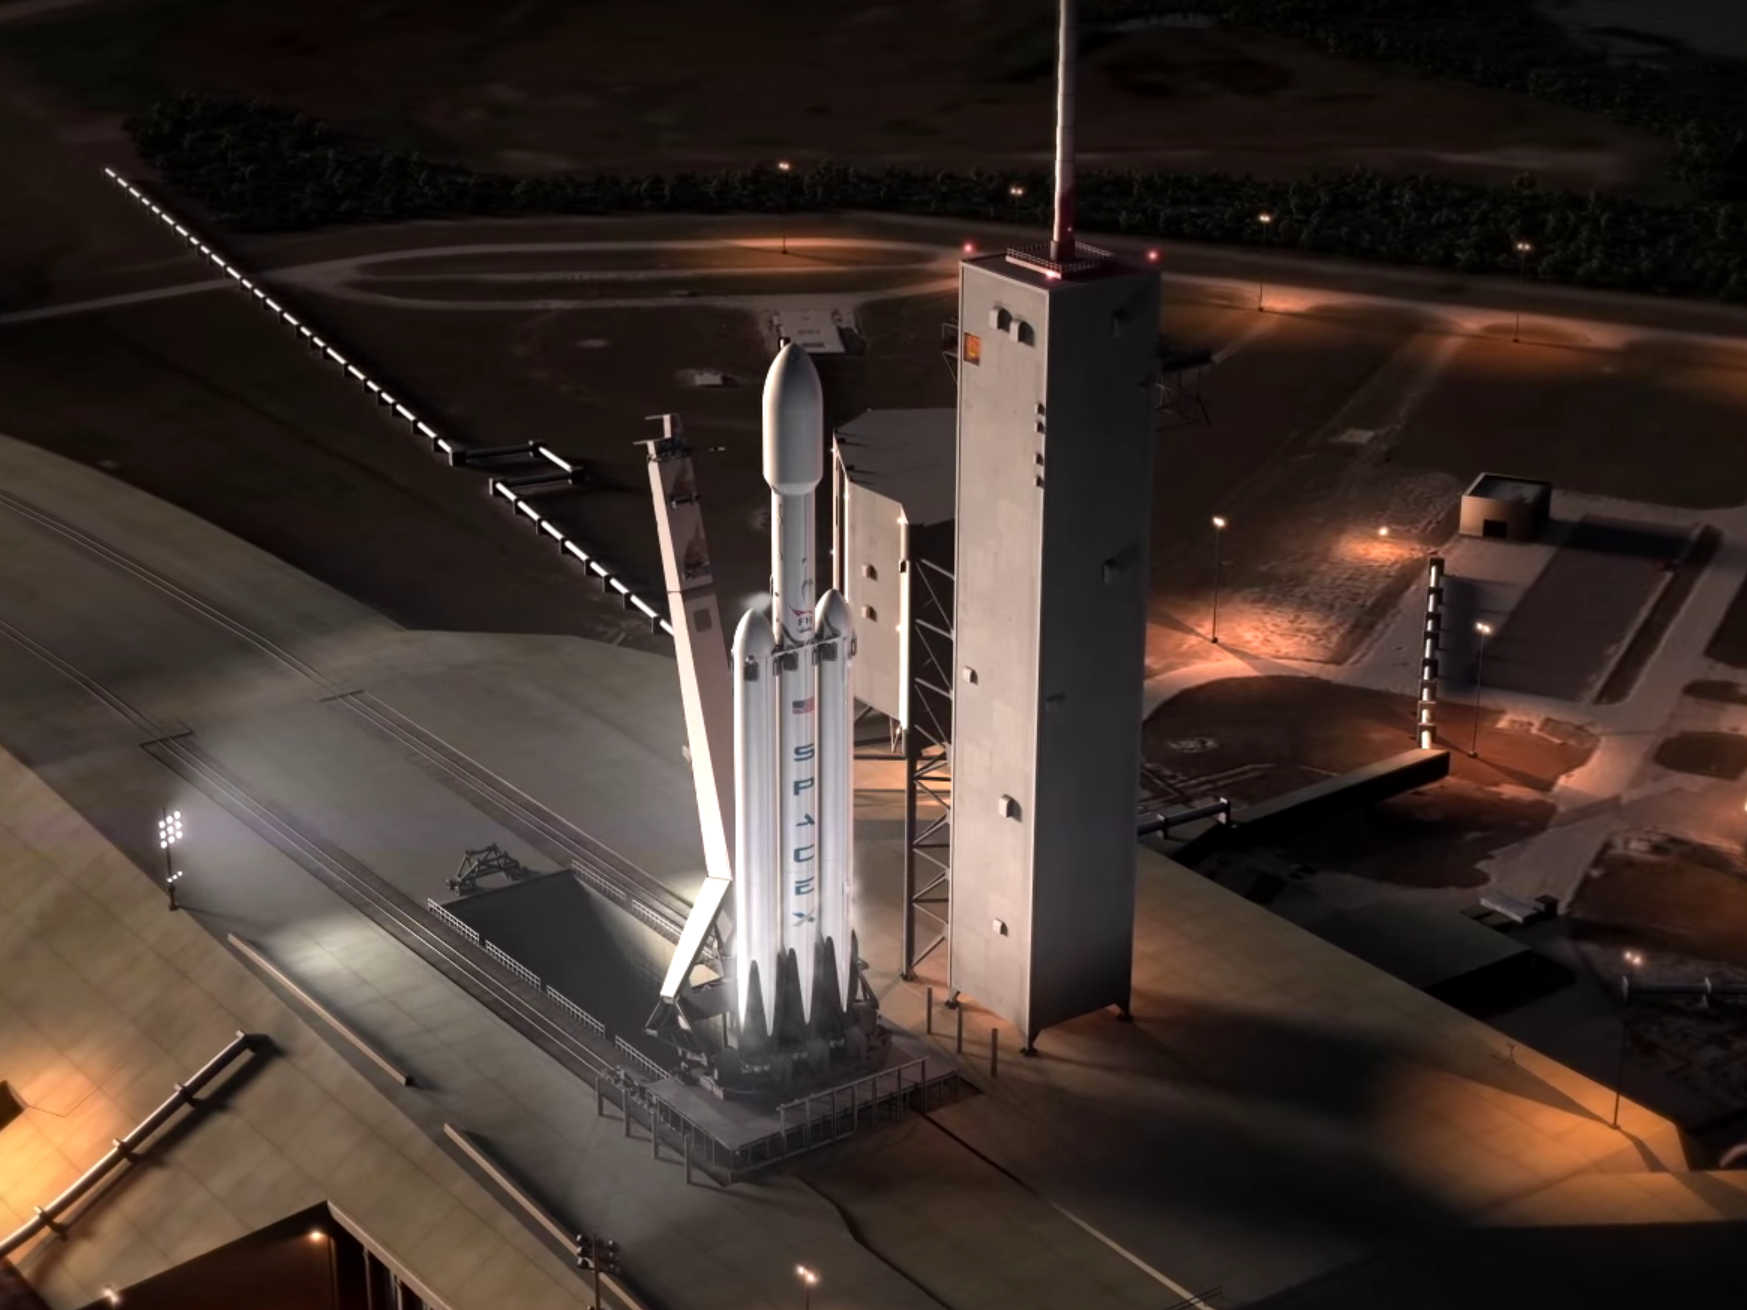 Elon Musk Says SpaceX Falcon Heavy Is the Most Powerful Rocket in the World: What Will It Carry?